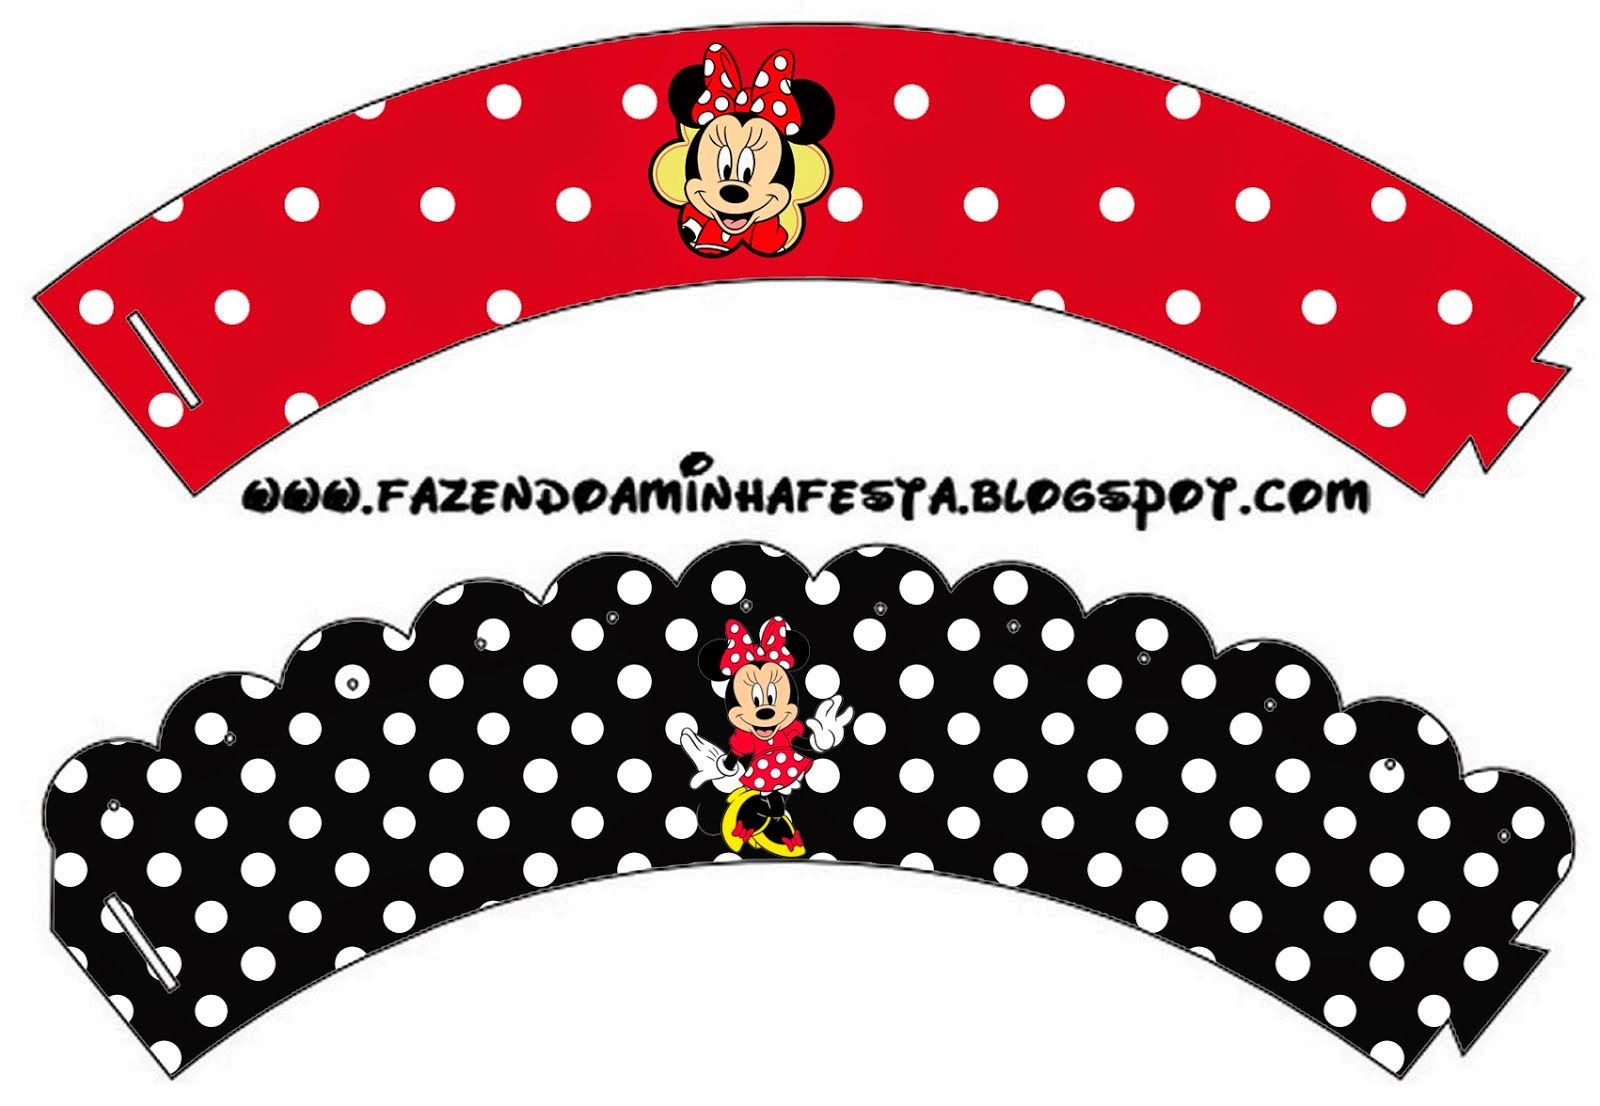 Free Printable Cupcake Wrappers.   C Cupcakes   Printables, Party - Free Printable Minnie Mouse Cupcake Wrappers